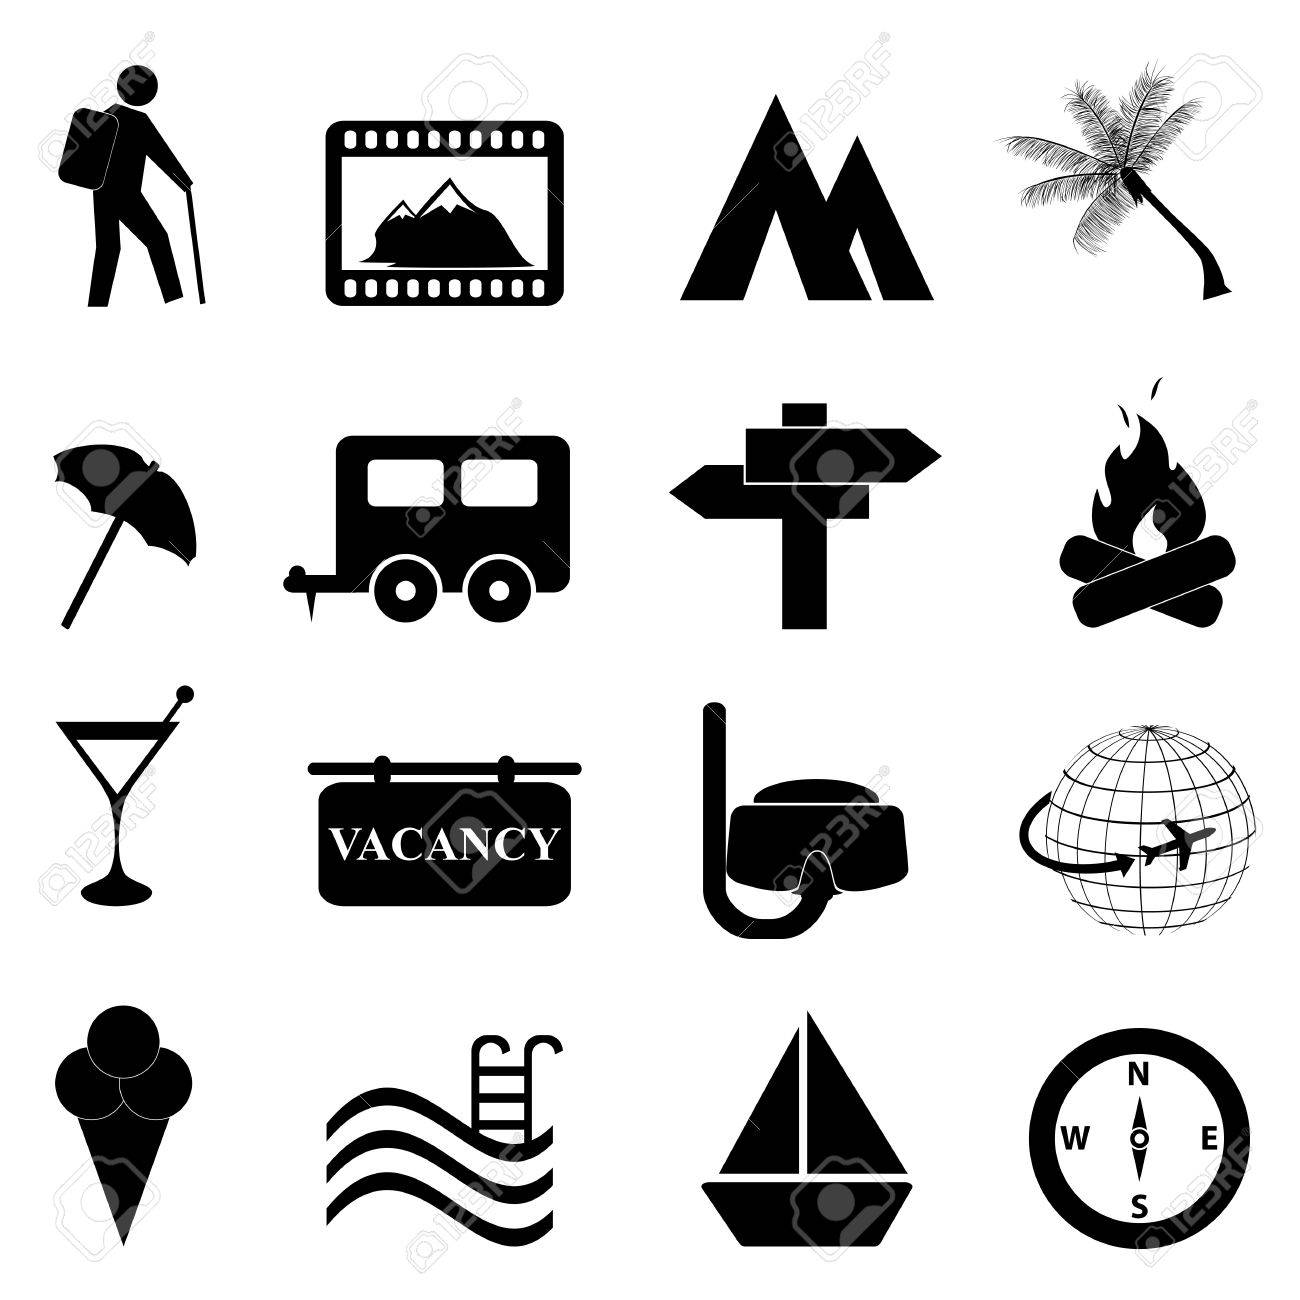 Leisure and recreation icon set on white background Stock Vector - 11381943